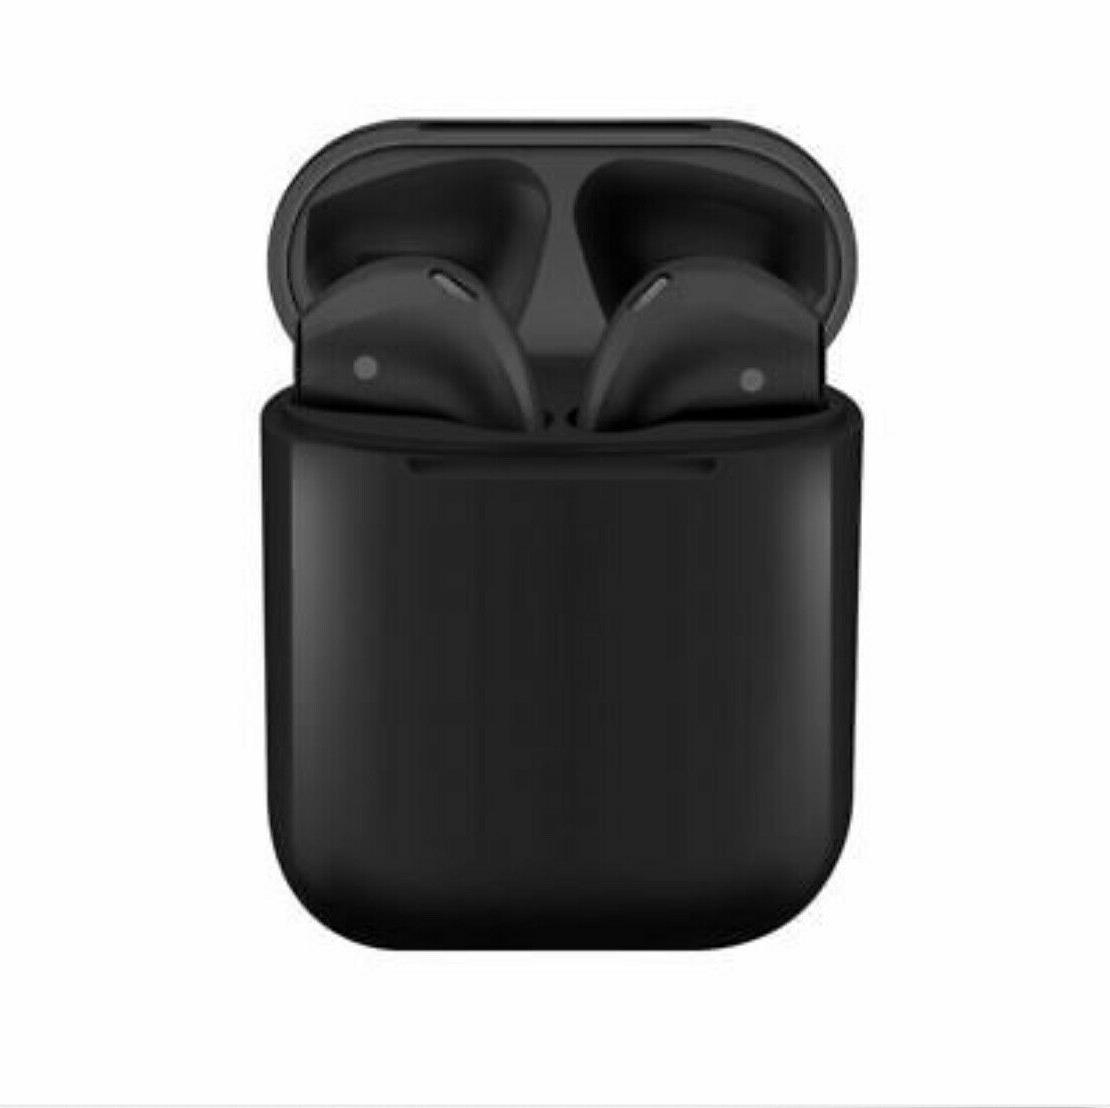 Bluetooth Earbuds 5.0 w/ charging case Smart